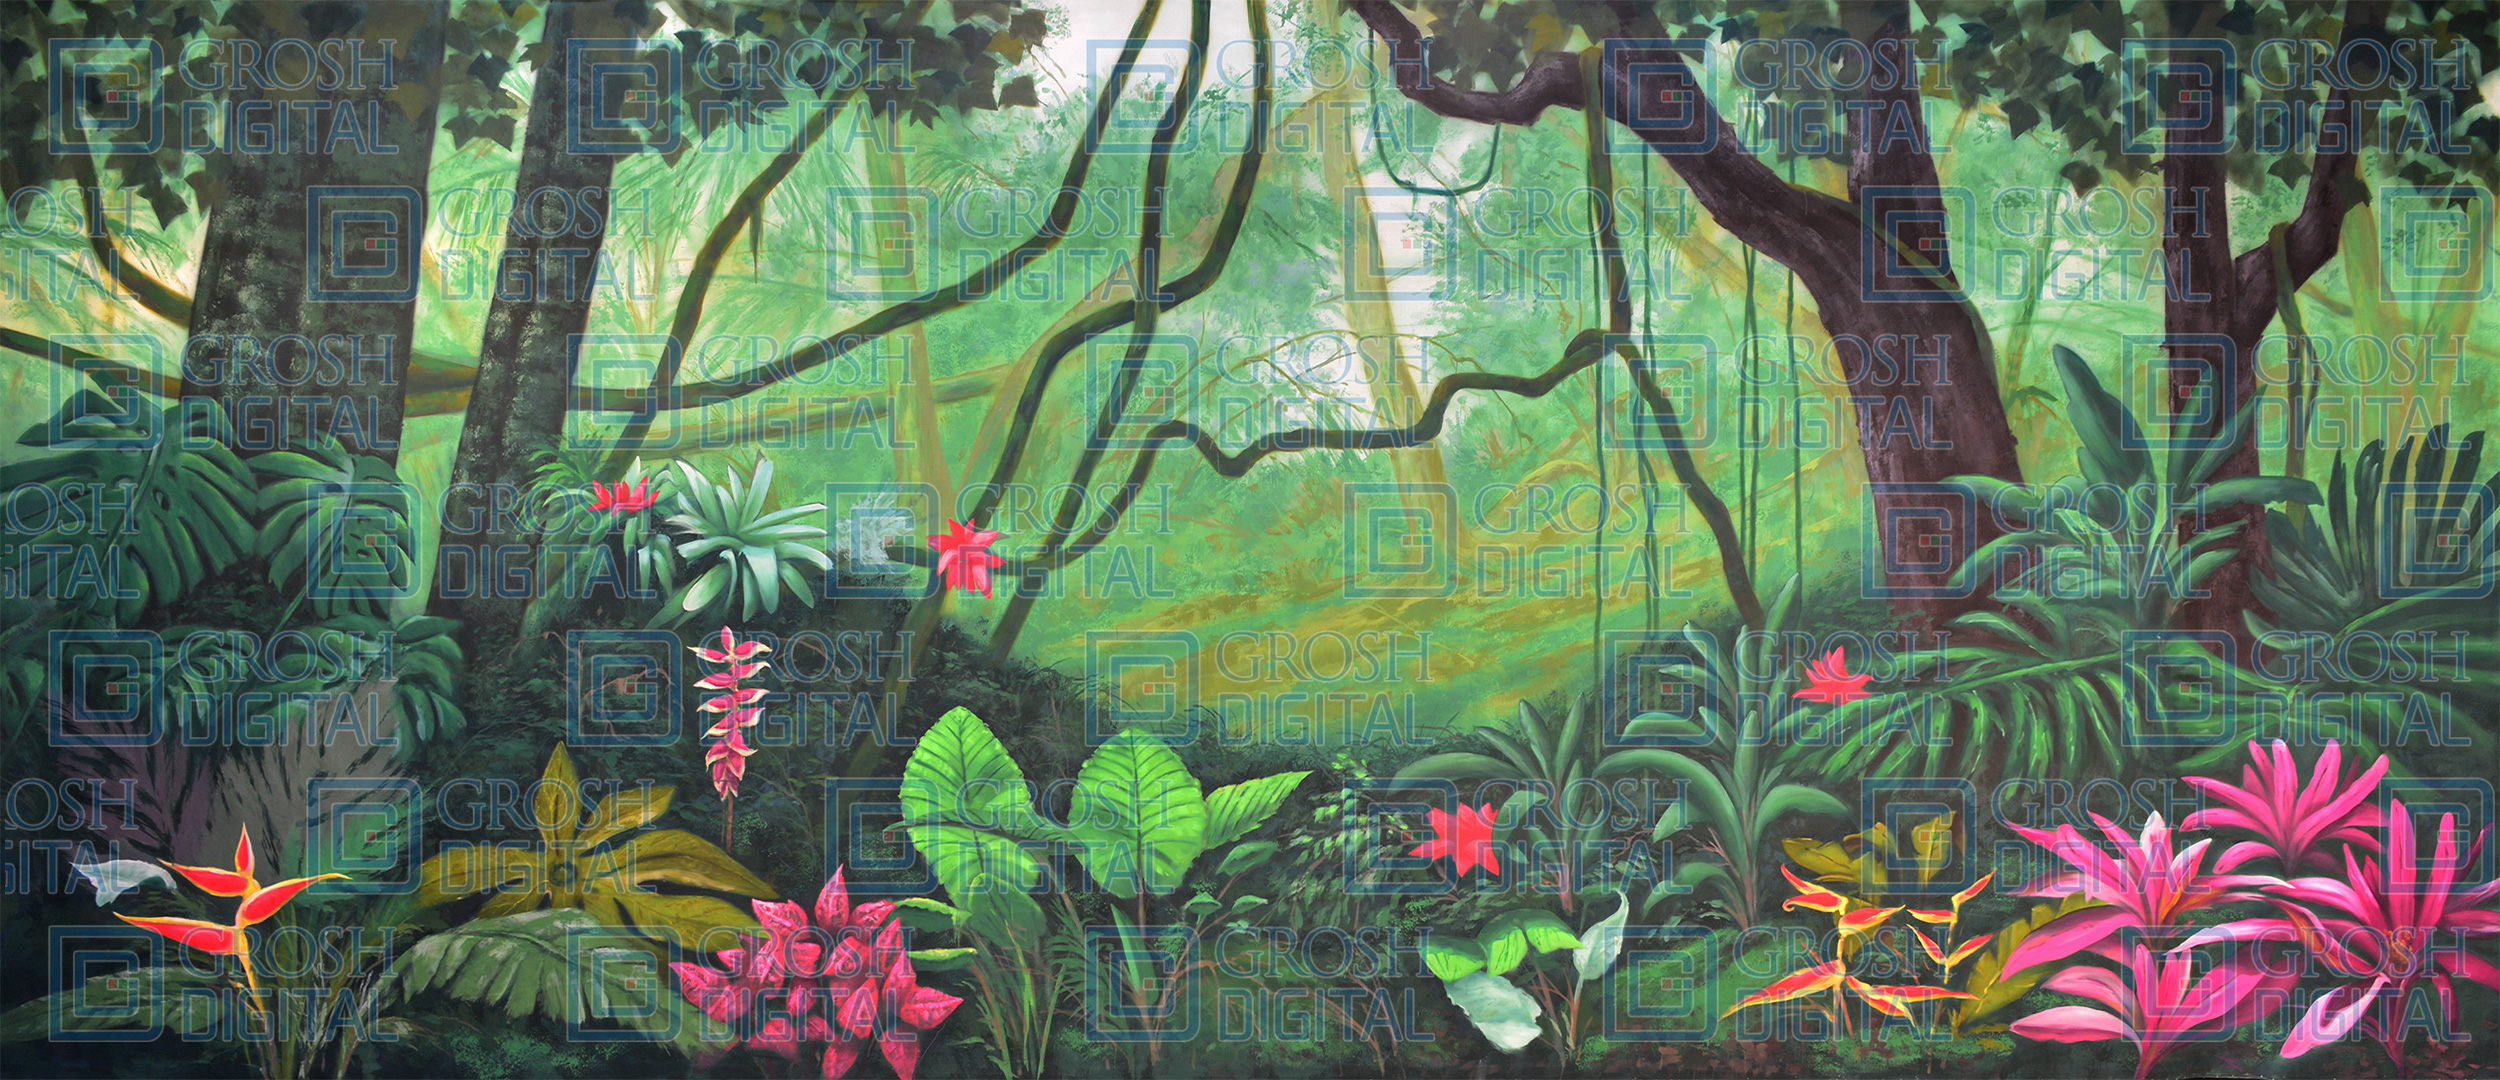 Lush Jungle Projected Backdrop for Beach/Tropical, Forest, Lion King, Madagascar, Moana, Peter Pan